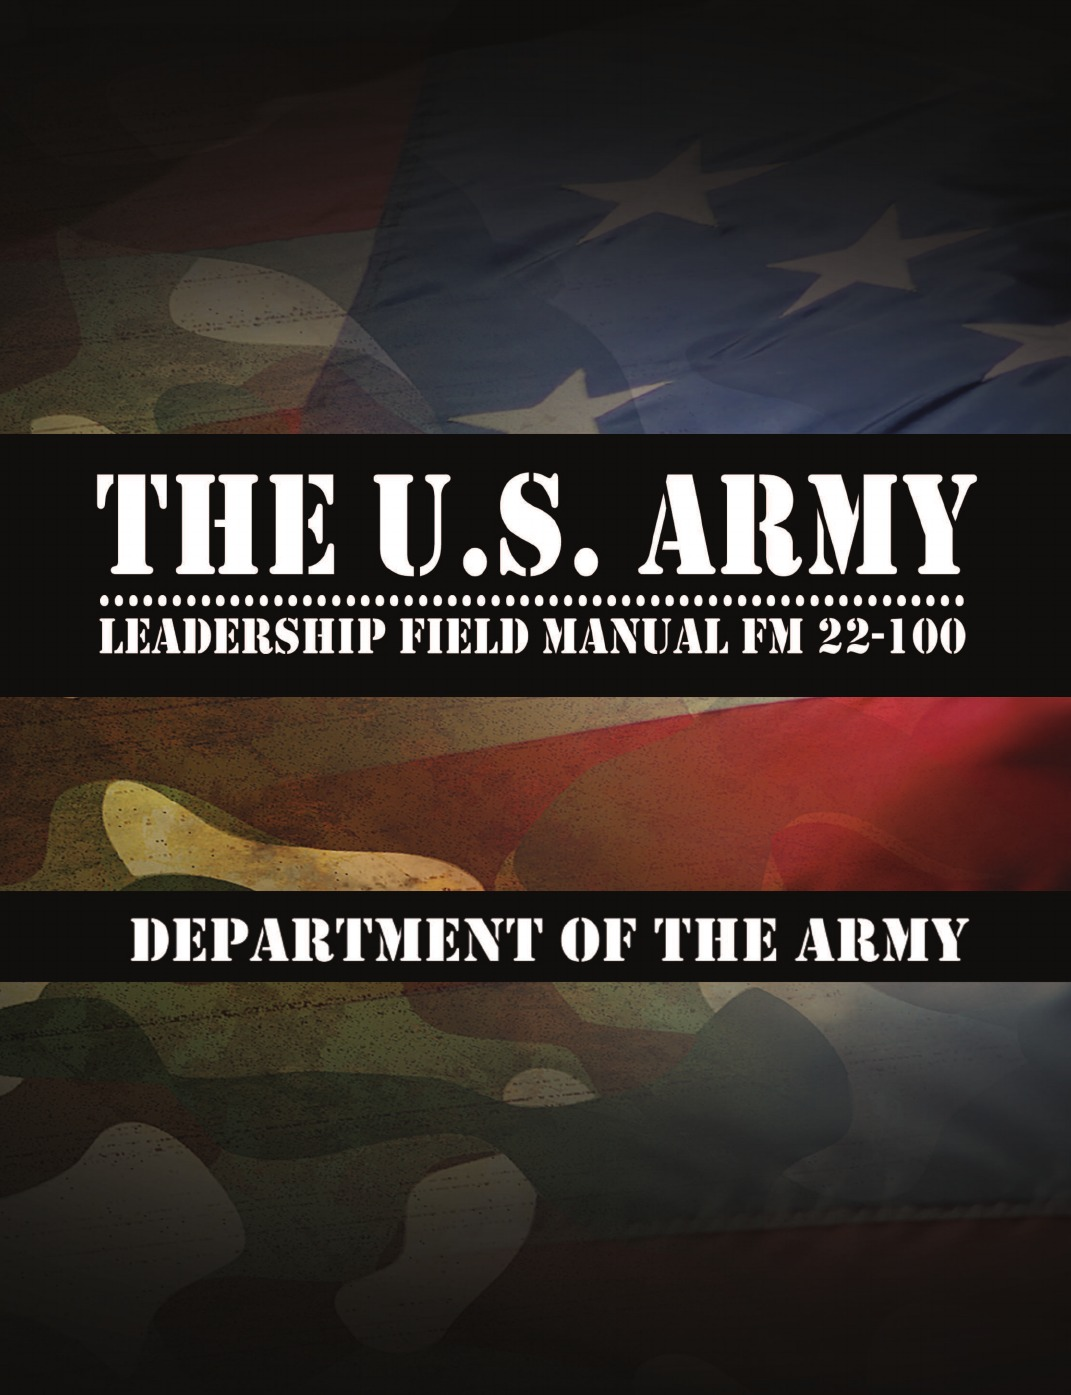 Leadership Center for Army and Us Army The U.S. Army Leadership Field Manual FM 22-100 megan tschannen moran trust matters leadership for successful schools